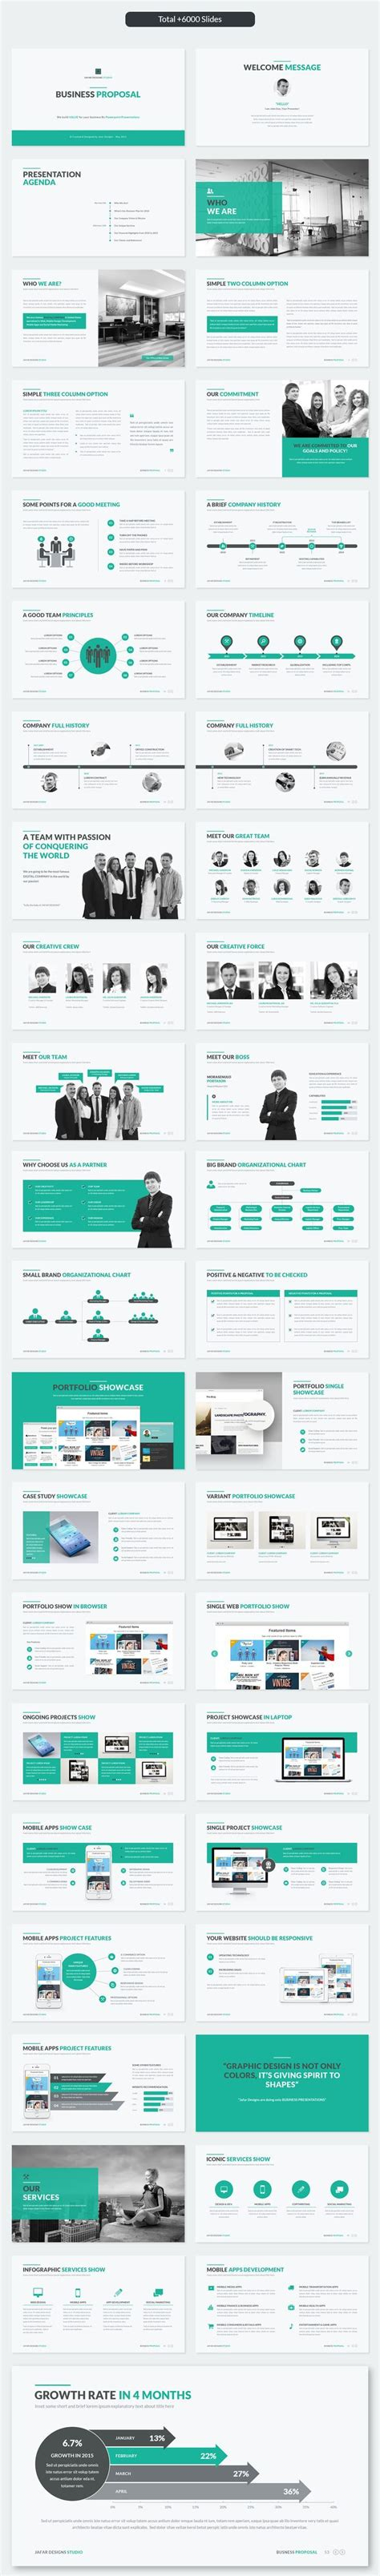 flite the leading creative management platform business infographic showcase and discover creative work